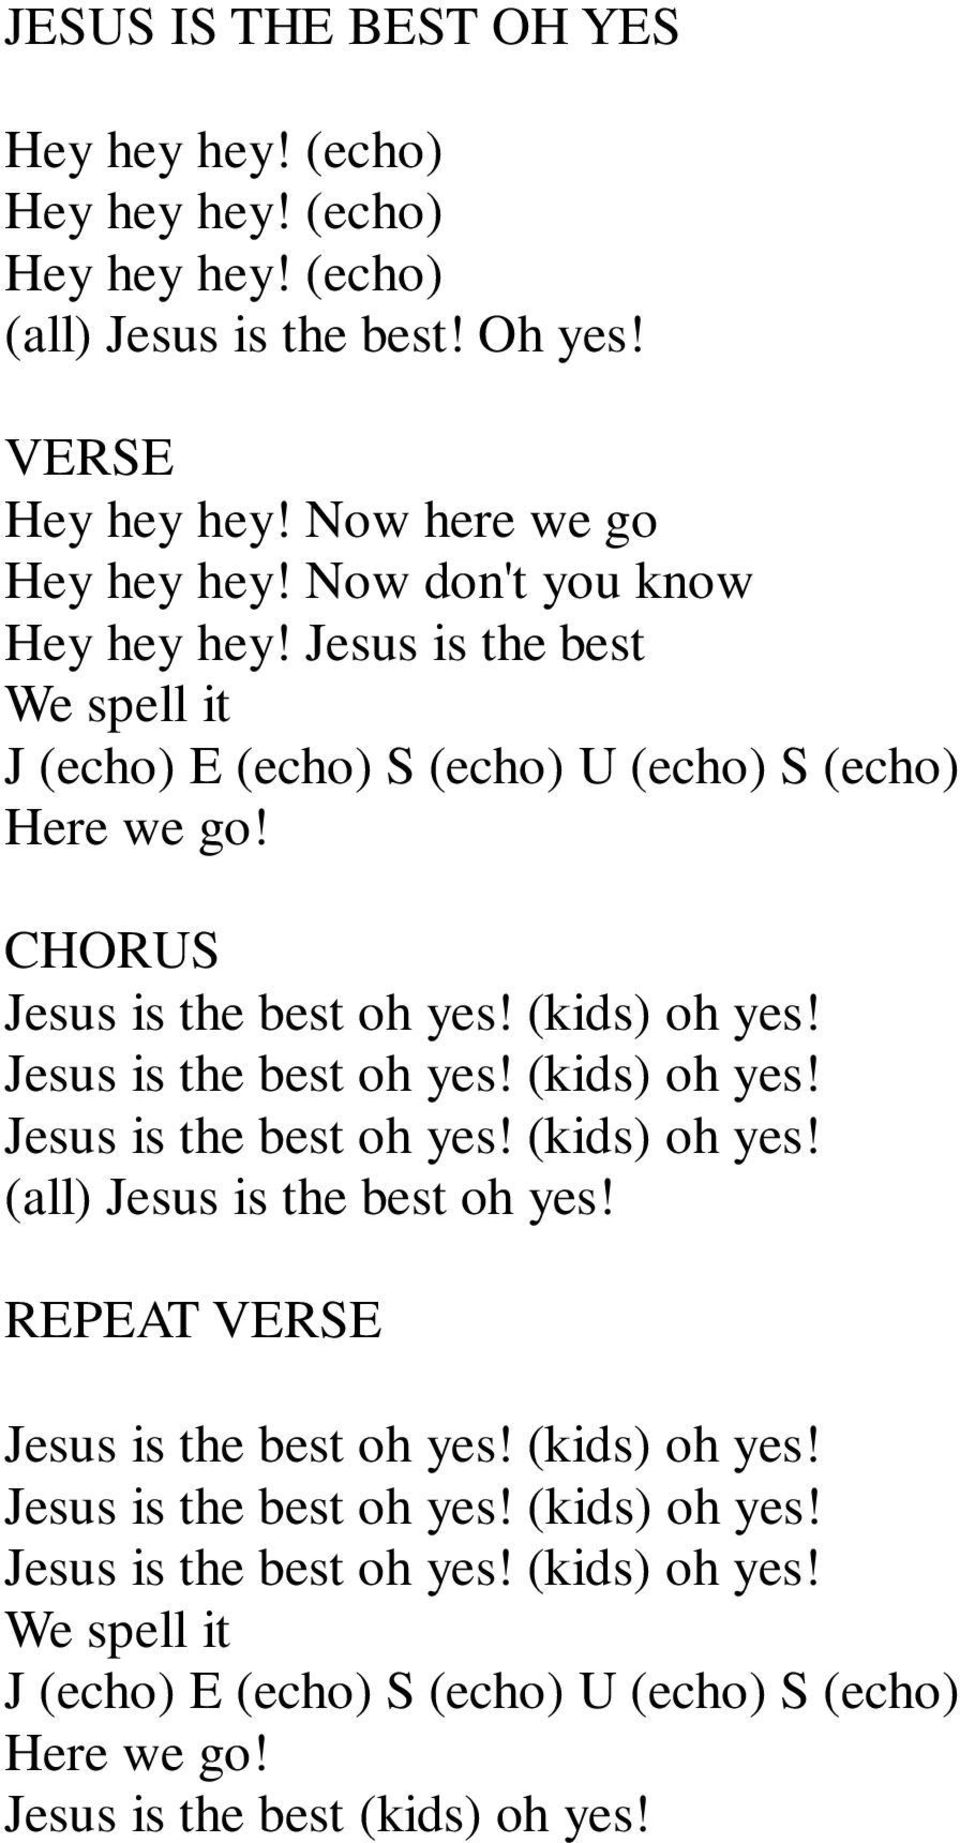 Jesus is the best oh yes! (kids) oh yes! Jesus is the best oh yes! (kids) oh yes! (all) Jesus is the best oh yes! REPEAT Jesus is the best oh yes! (kids) oh yes! Jesus is the best oh yes! (kids) oh yes! Jesus is the best oh yes! (kids) oh yes! We spell it J (echo) E (echo) S (echo) U (echo) S (echo) Here we go!